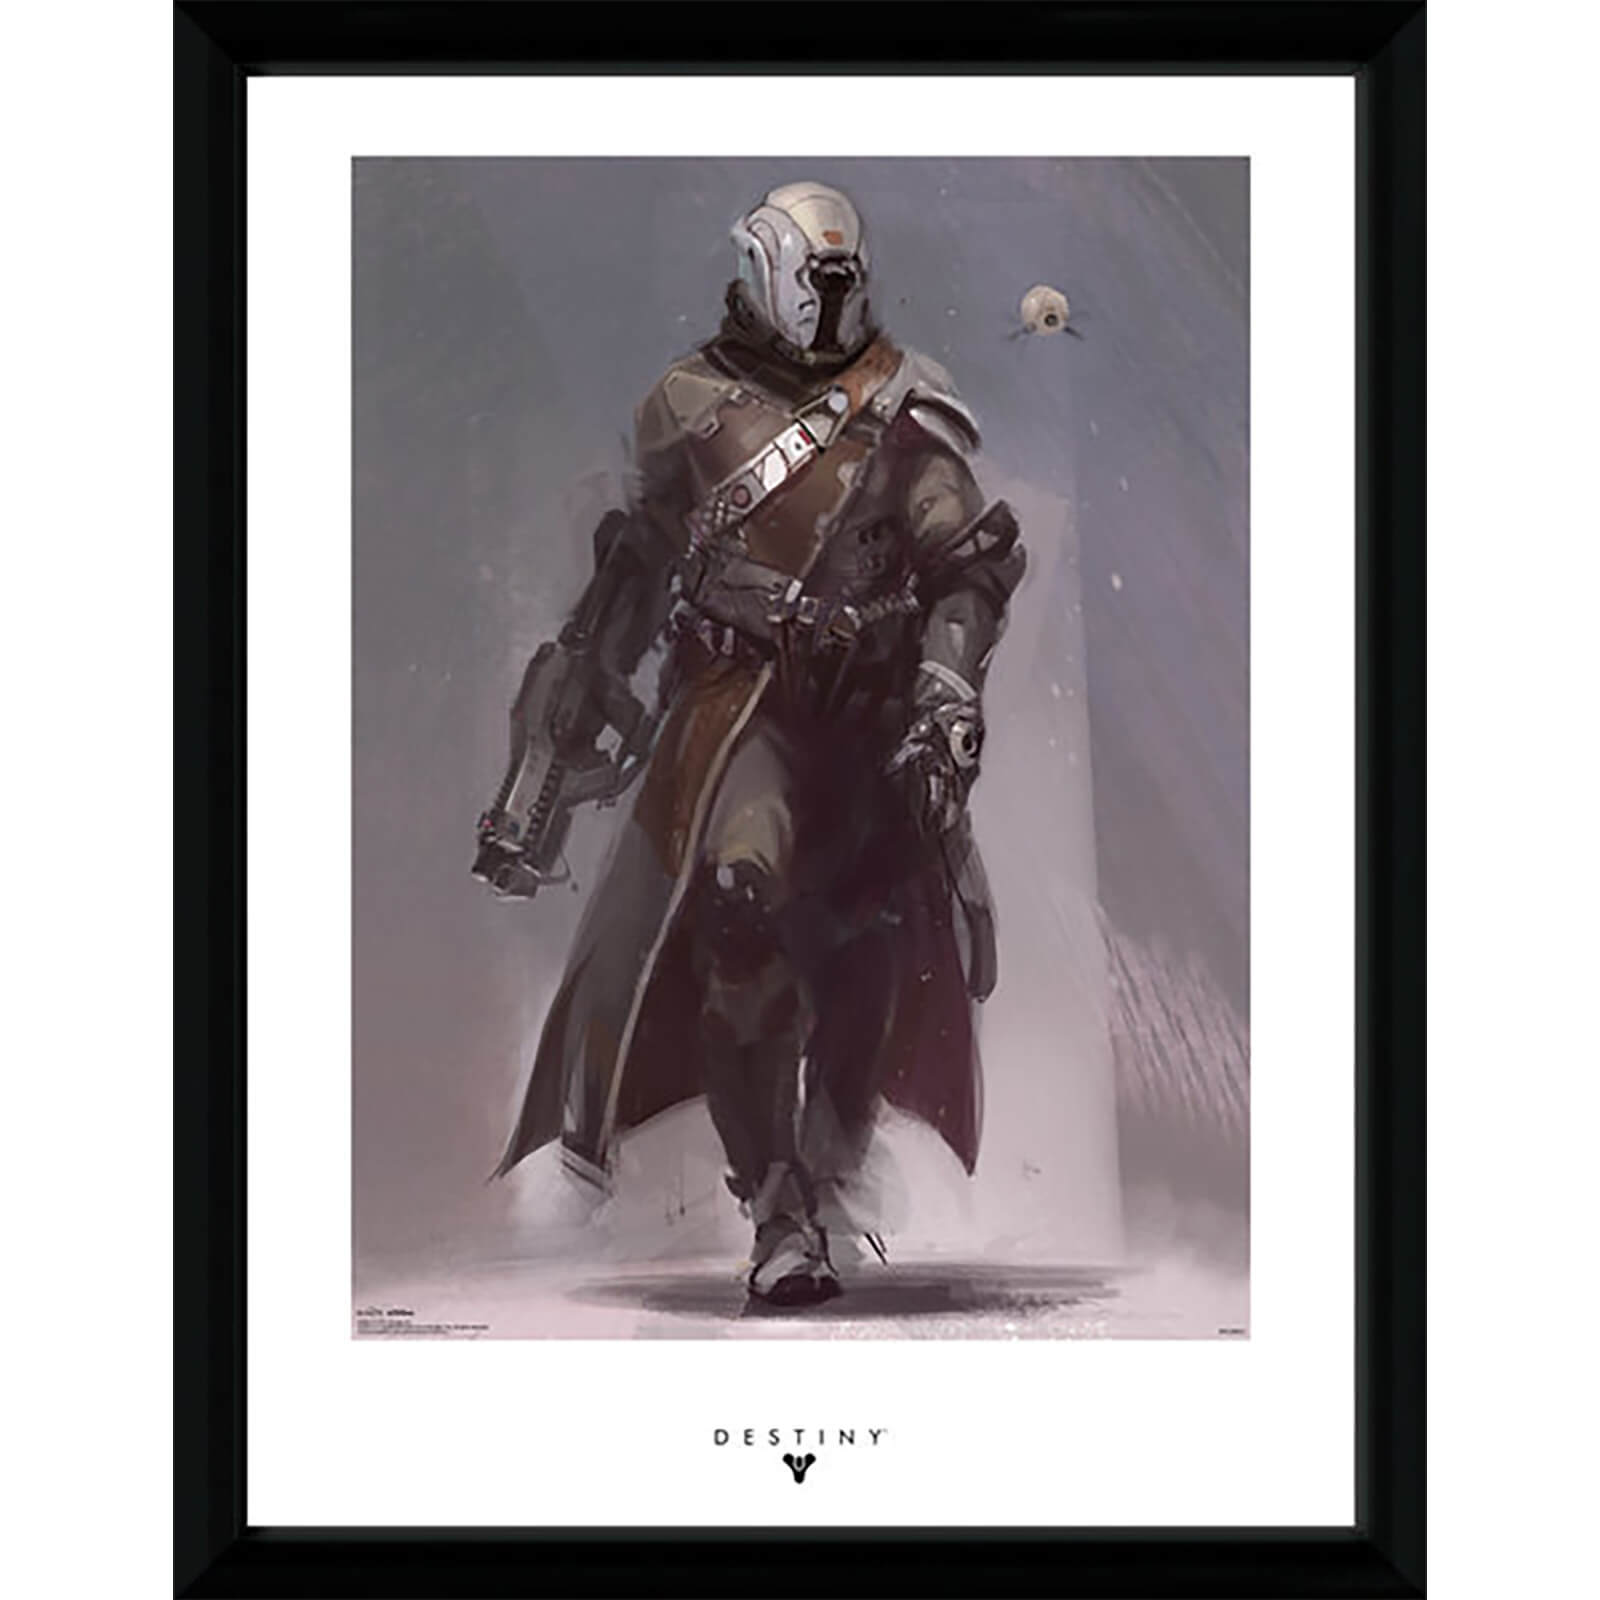 Destiny Warlock - 16 x 12 Inches Framed Photograph